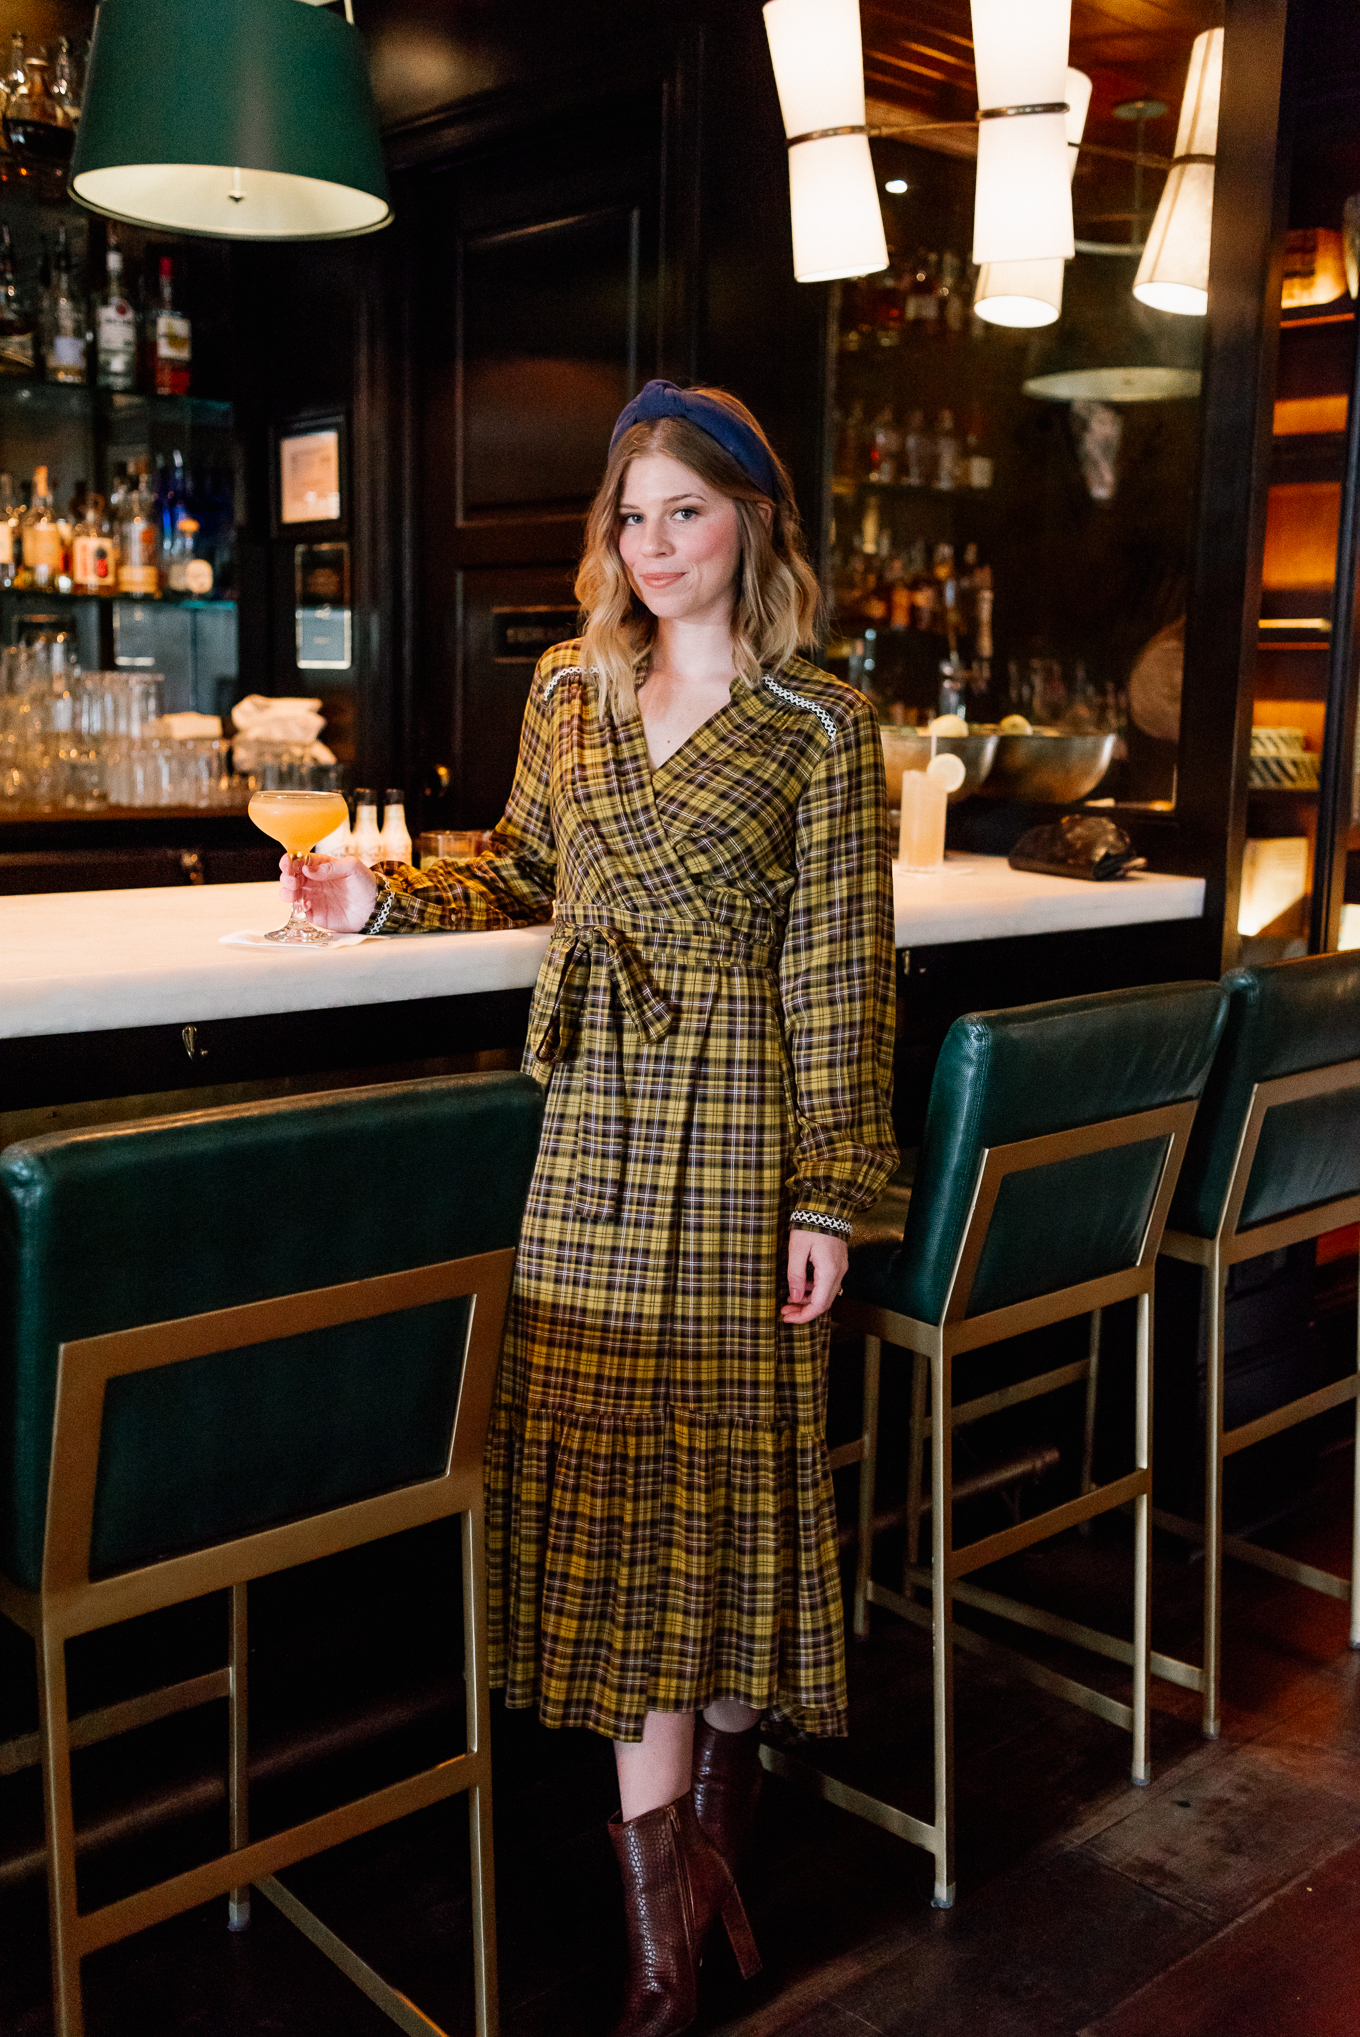 The BEST Charleston Bars   The Chicest Bar in Charleston   Louella Reese